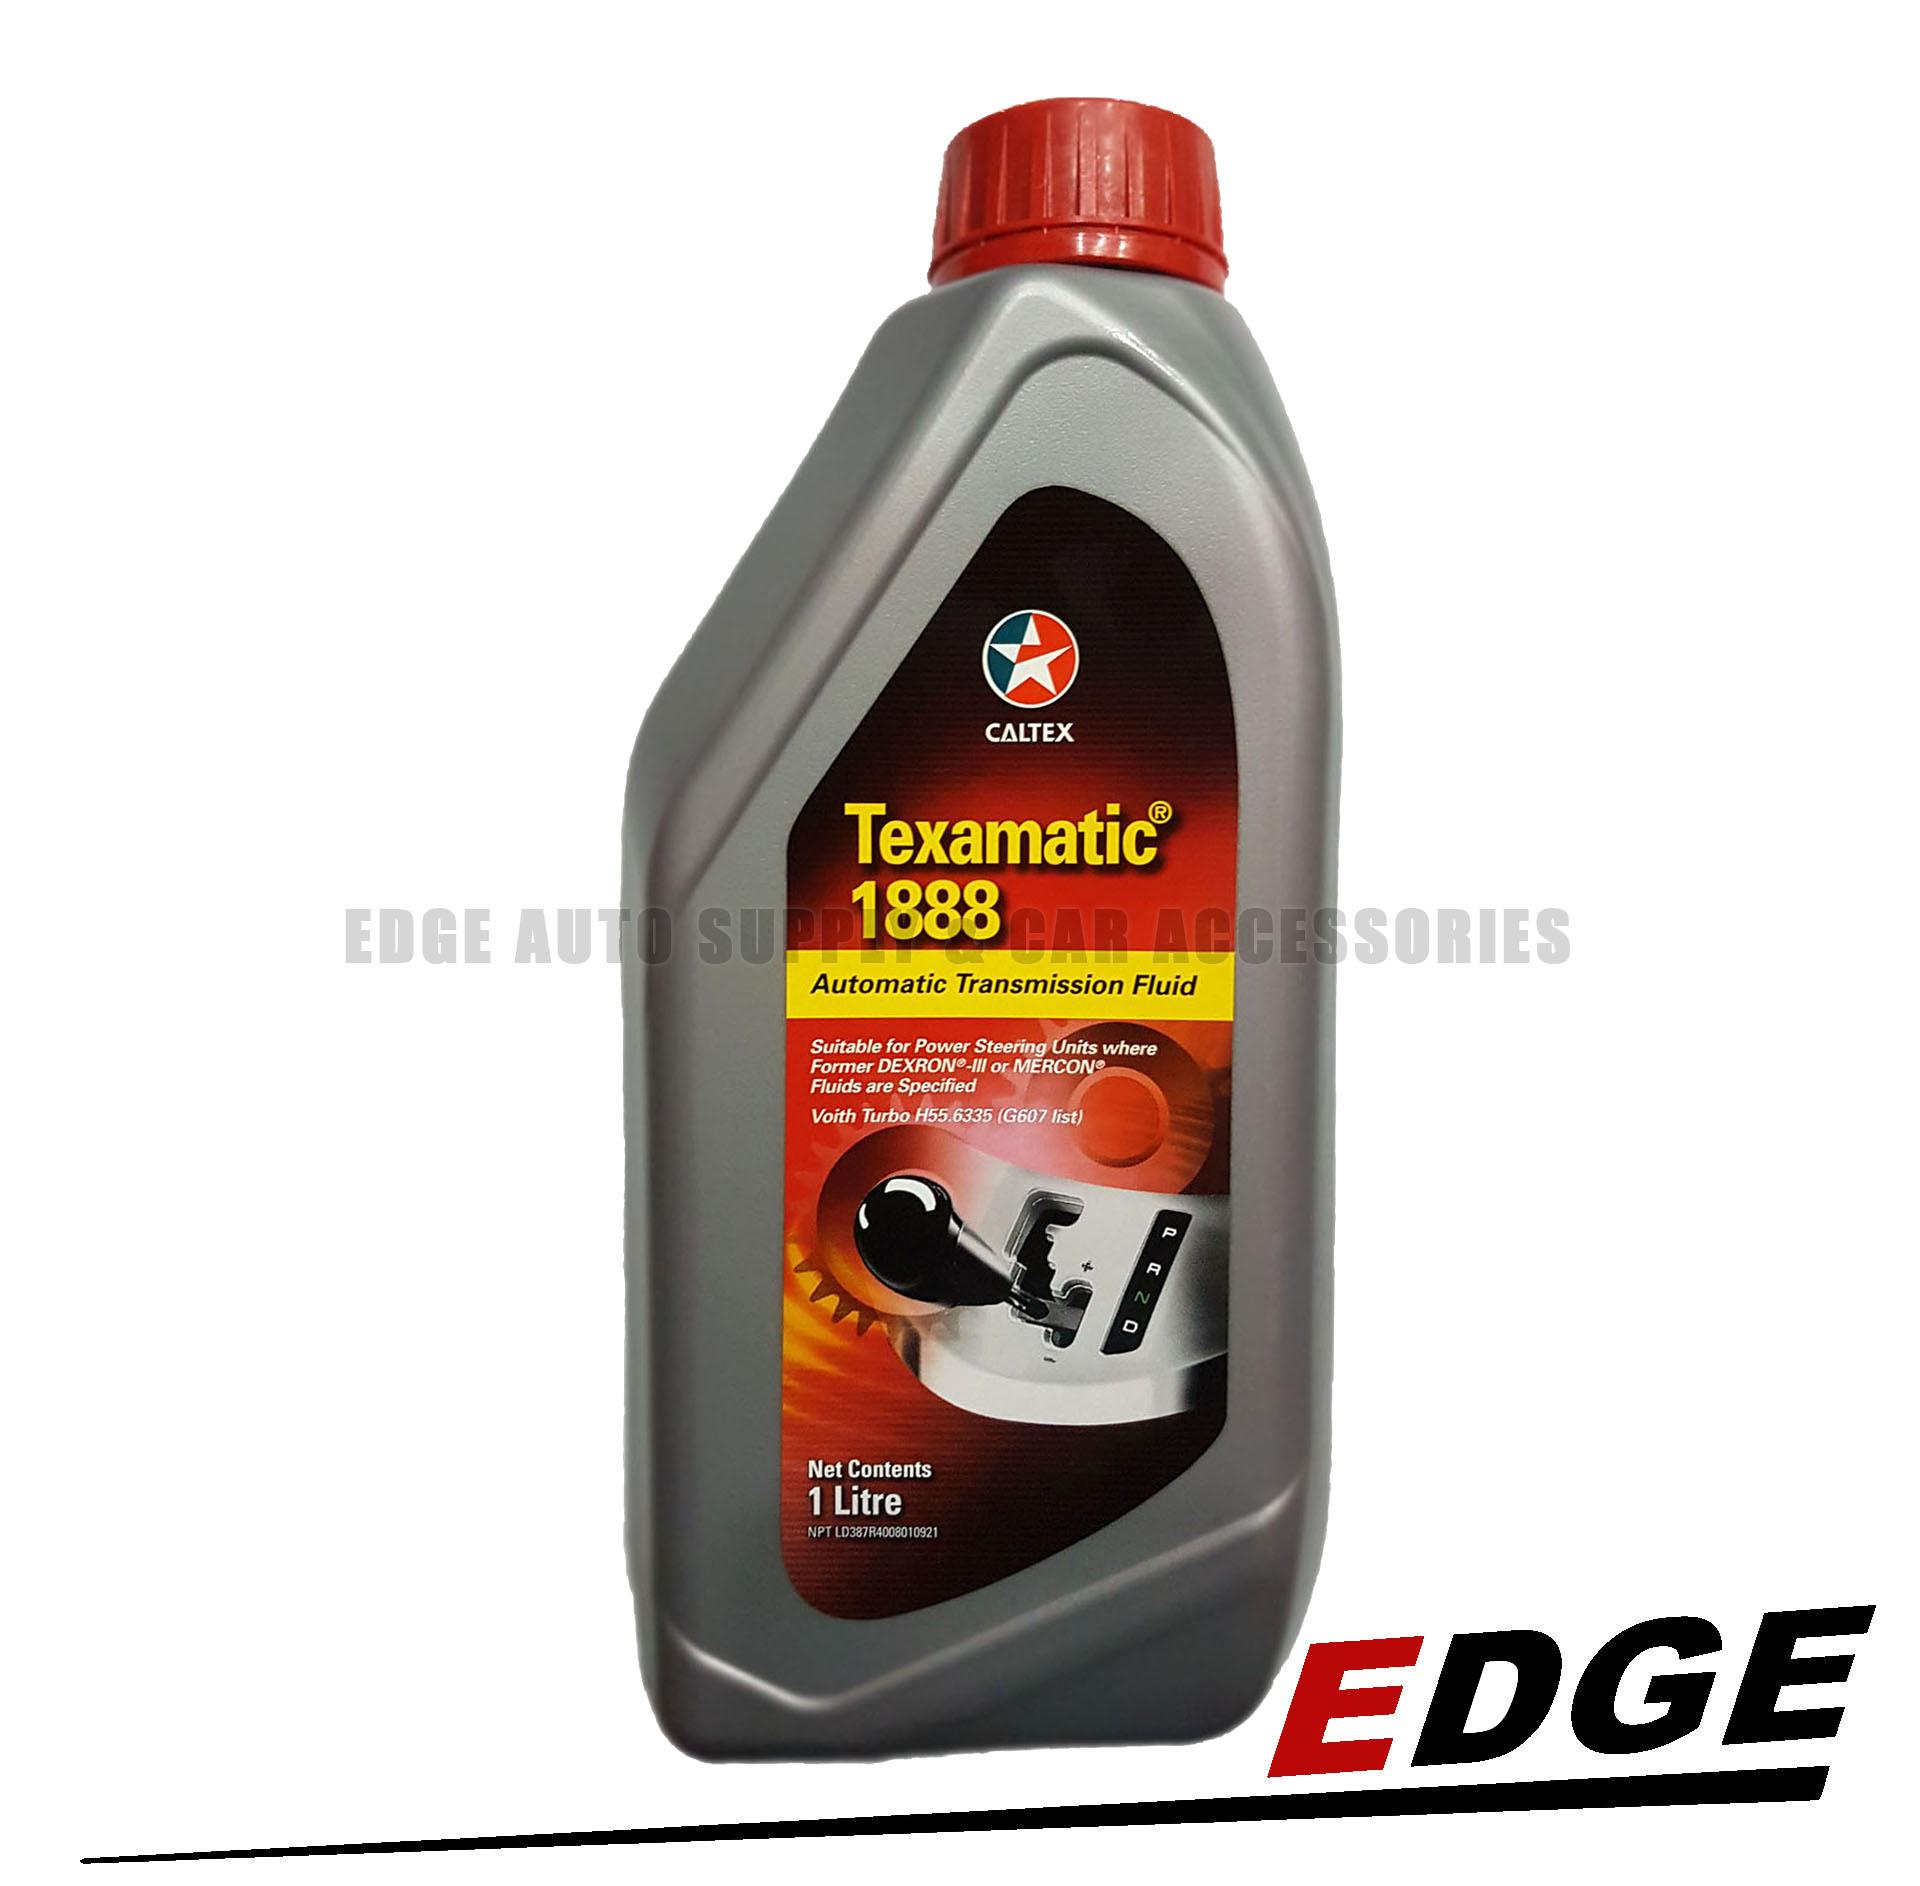 Caltex Texamatic 1888 Automatic Transmission Fluid ATF 1L